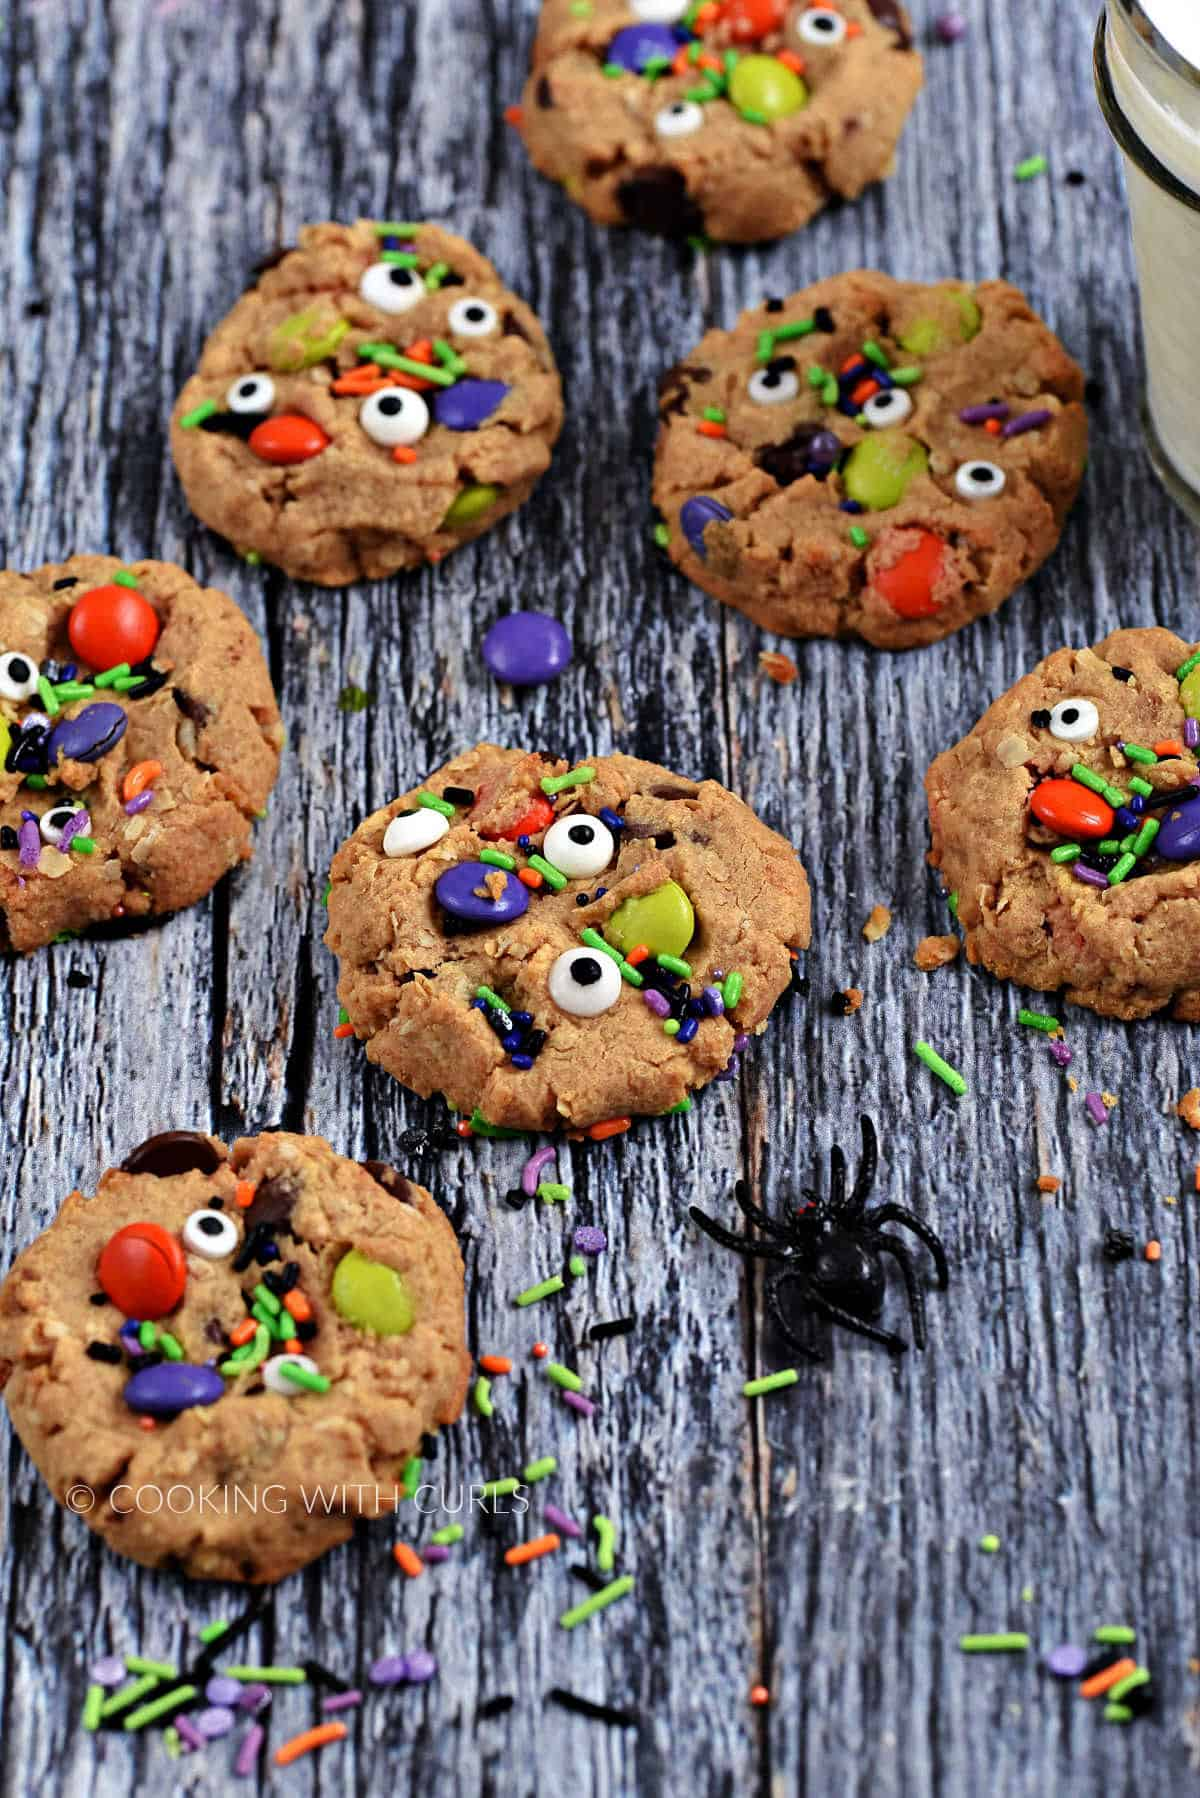 Seven cookies topped with candy eyes, M&M's, and colorful sprinkles surrounded by sprinkles, a black spider, and a glass of milk.